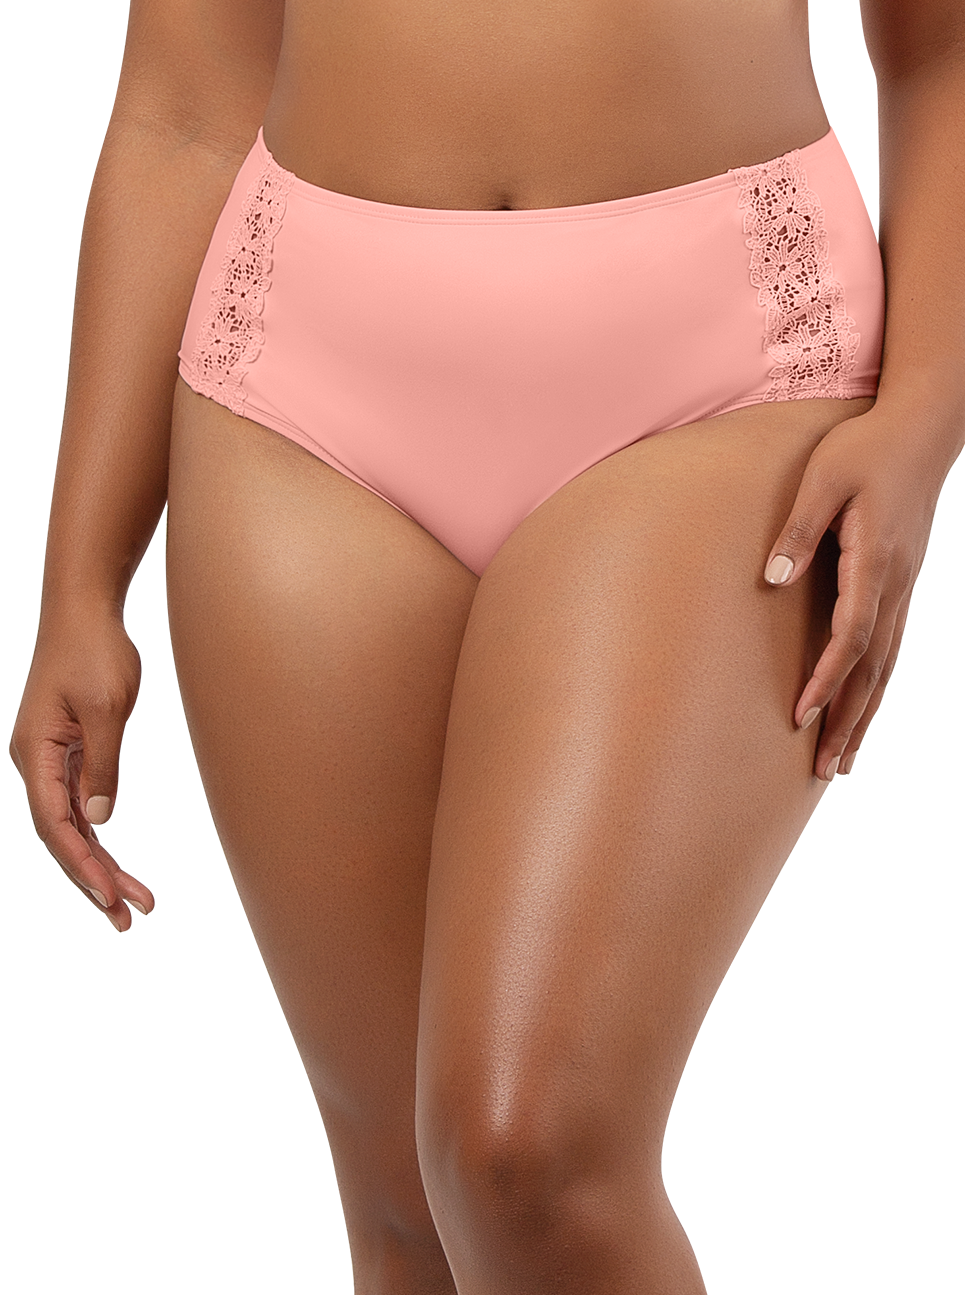 PARFAIT Brigitte HighwaistBikiniBottomS8205 PeachBud Front2 - Brigitte Highwaist Bikini Bottom Peach Bud S8205